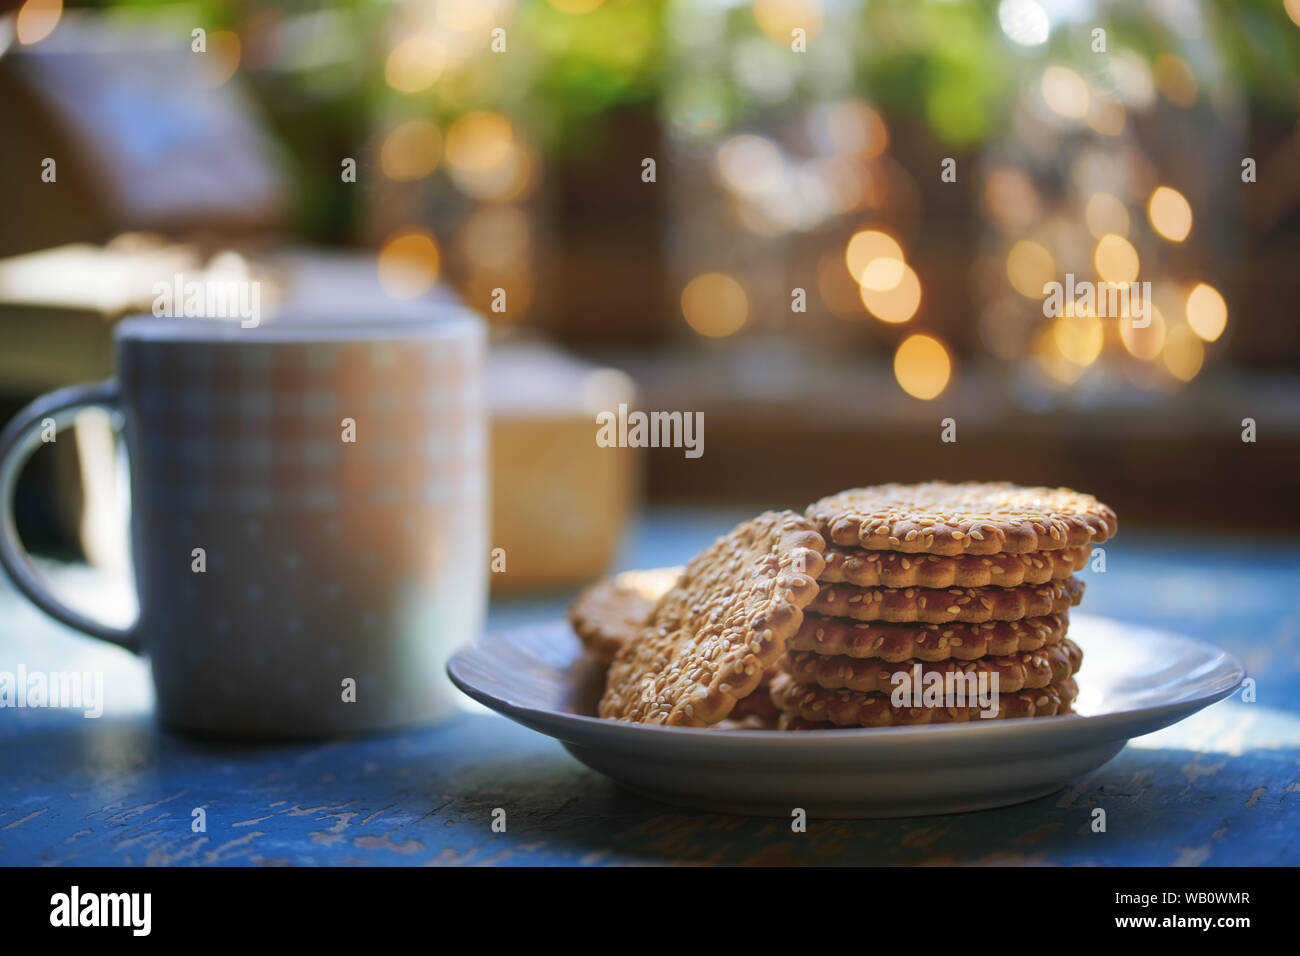 Teacup and Christmas gluten free cookies on a table near the window Stock Photo